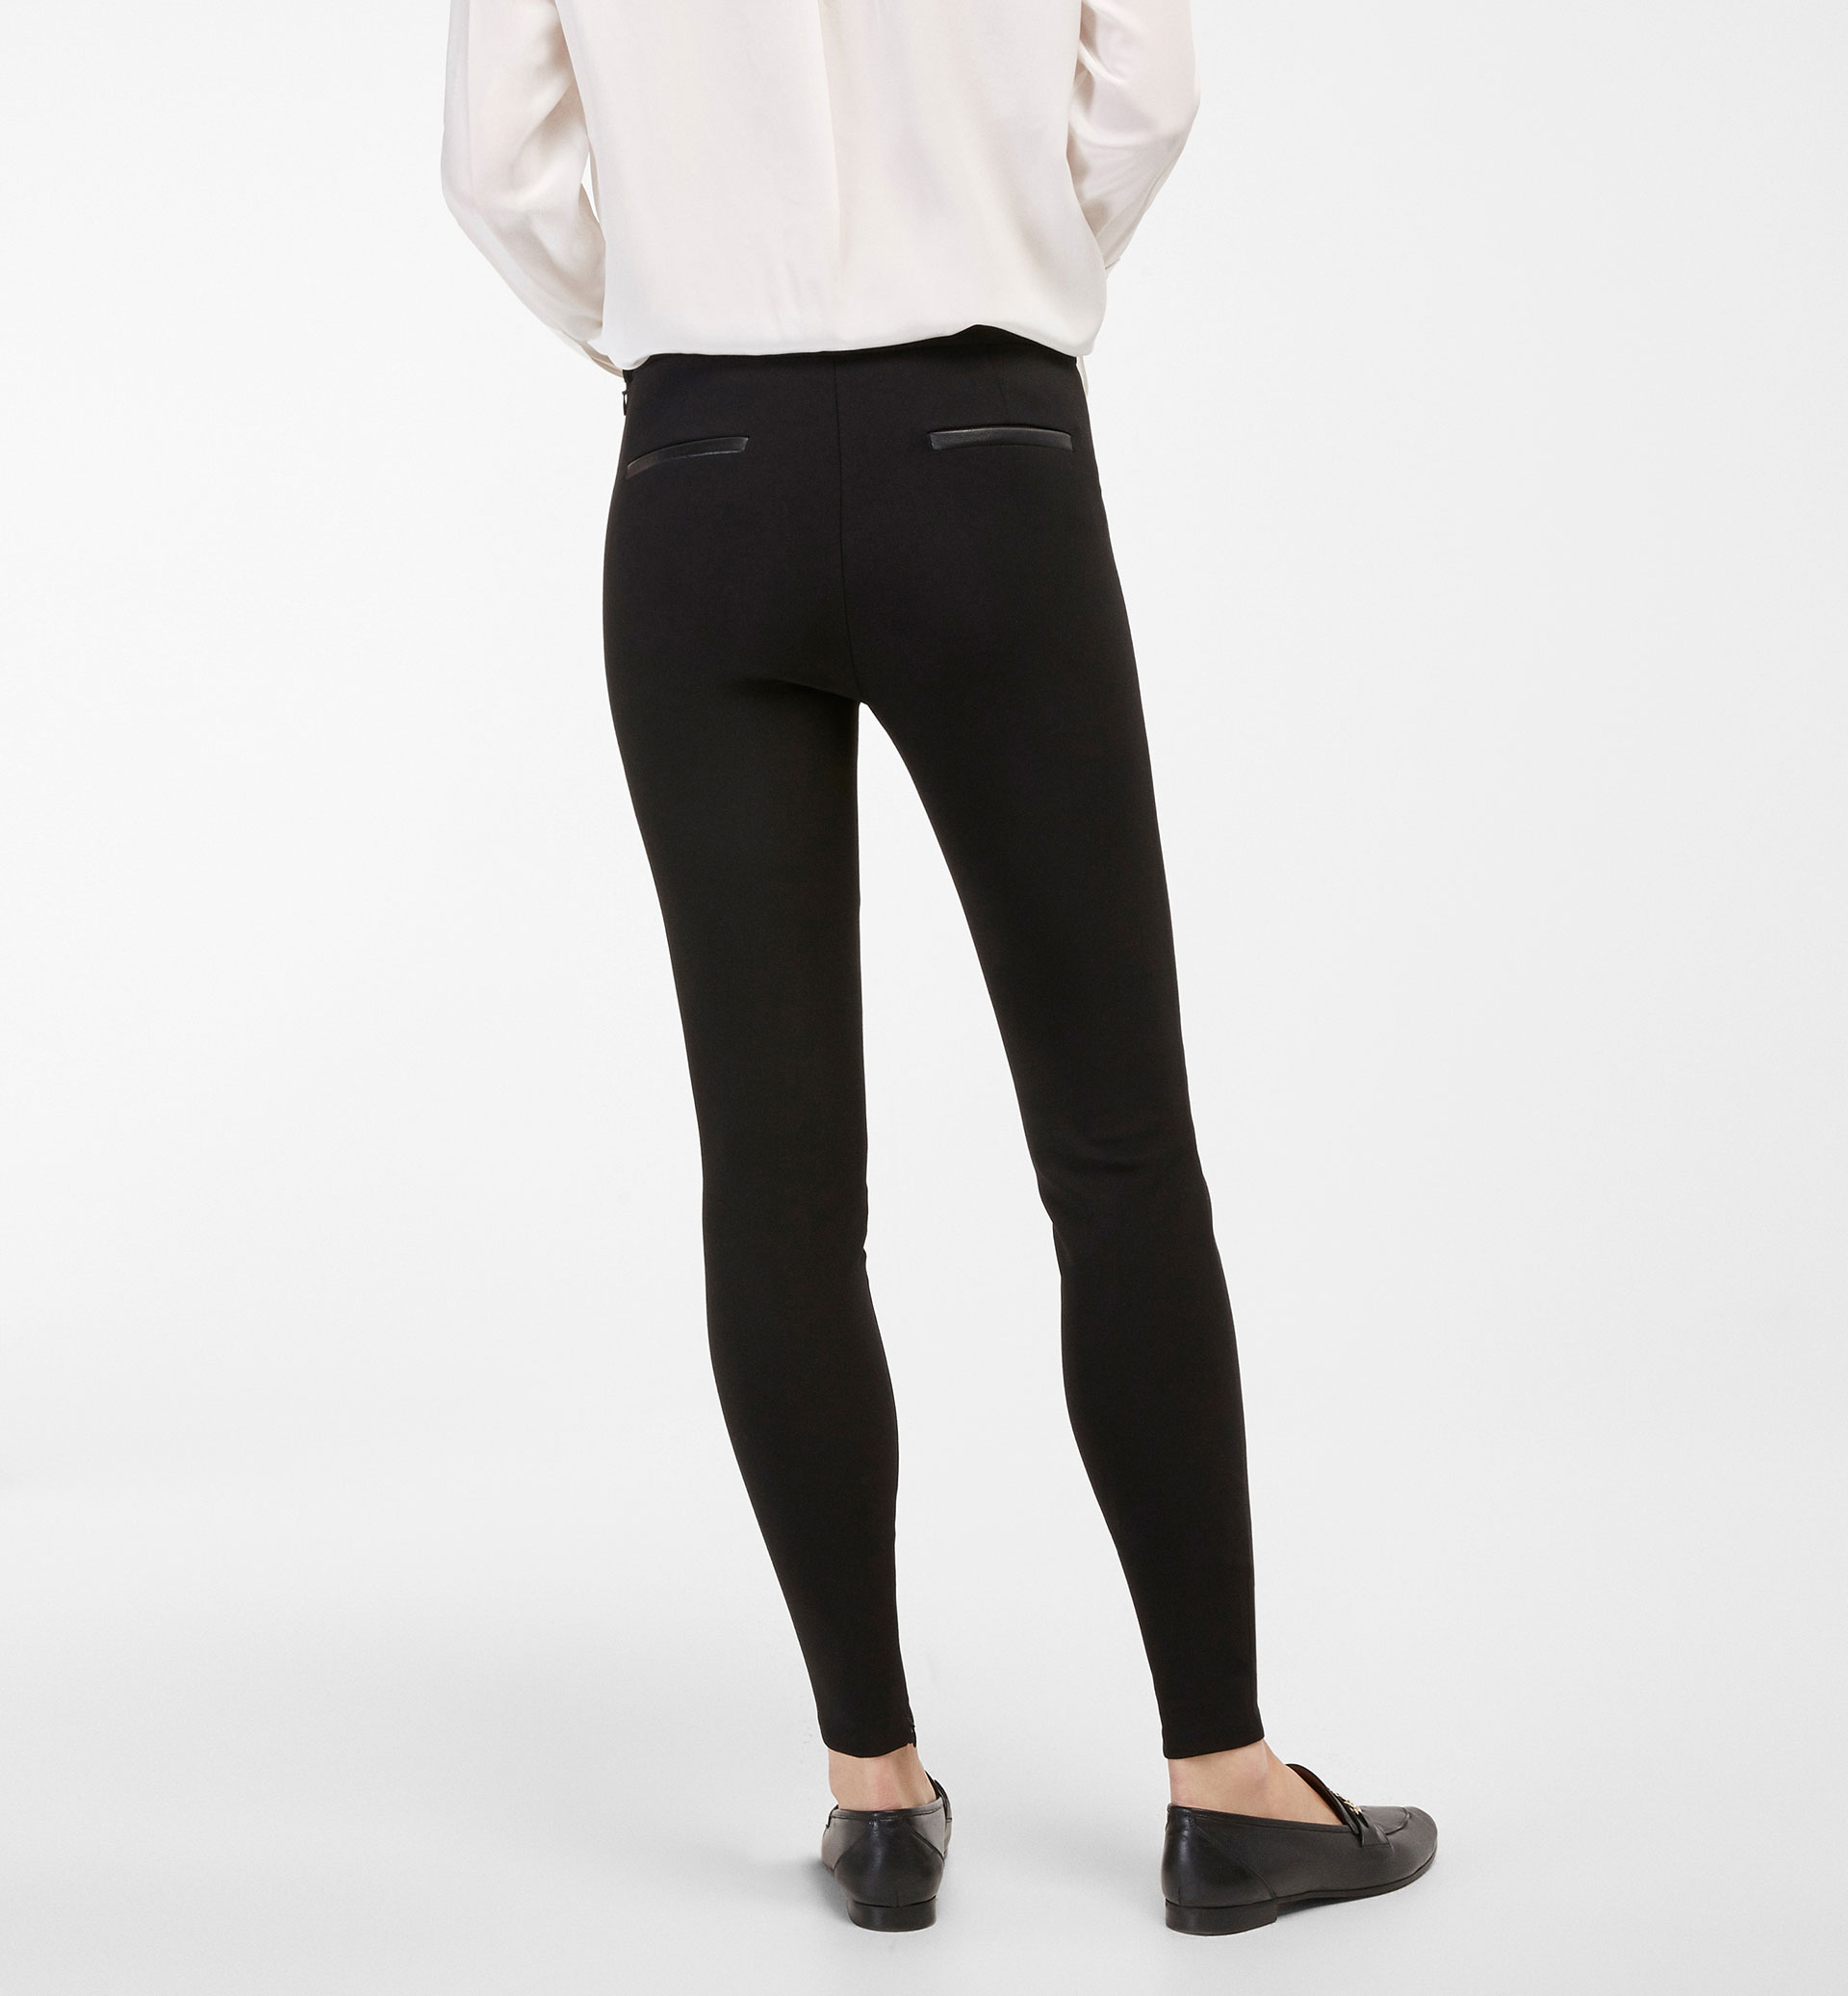 LEGGINGS WITH LEATHER DETAIL